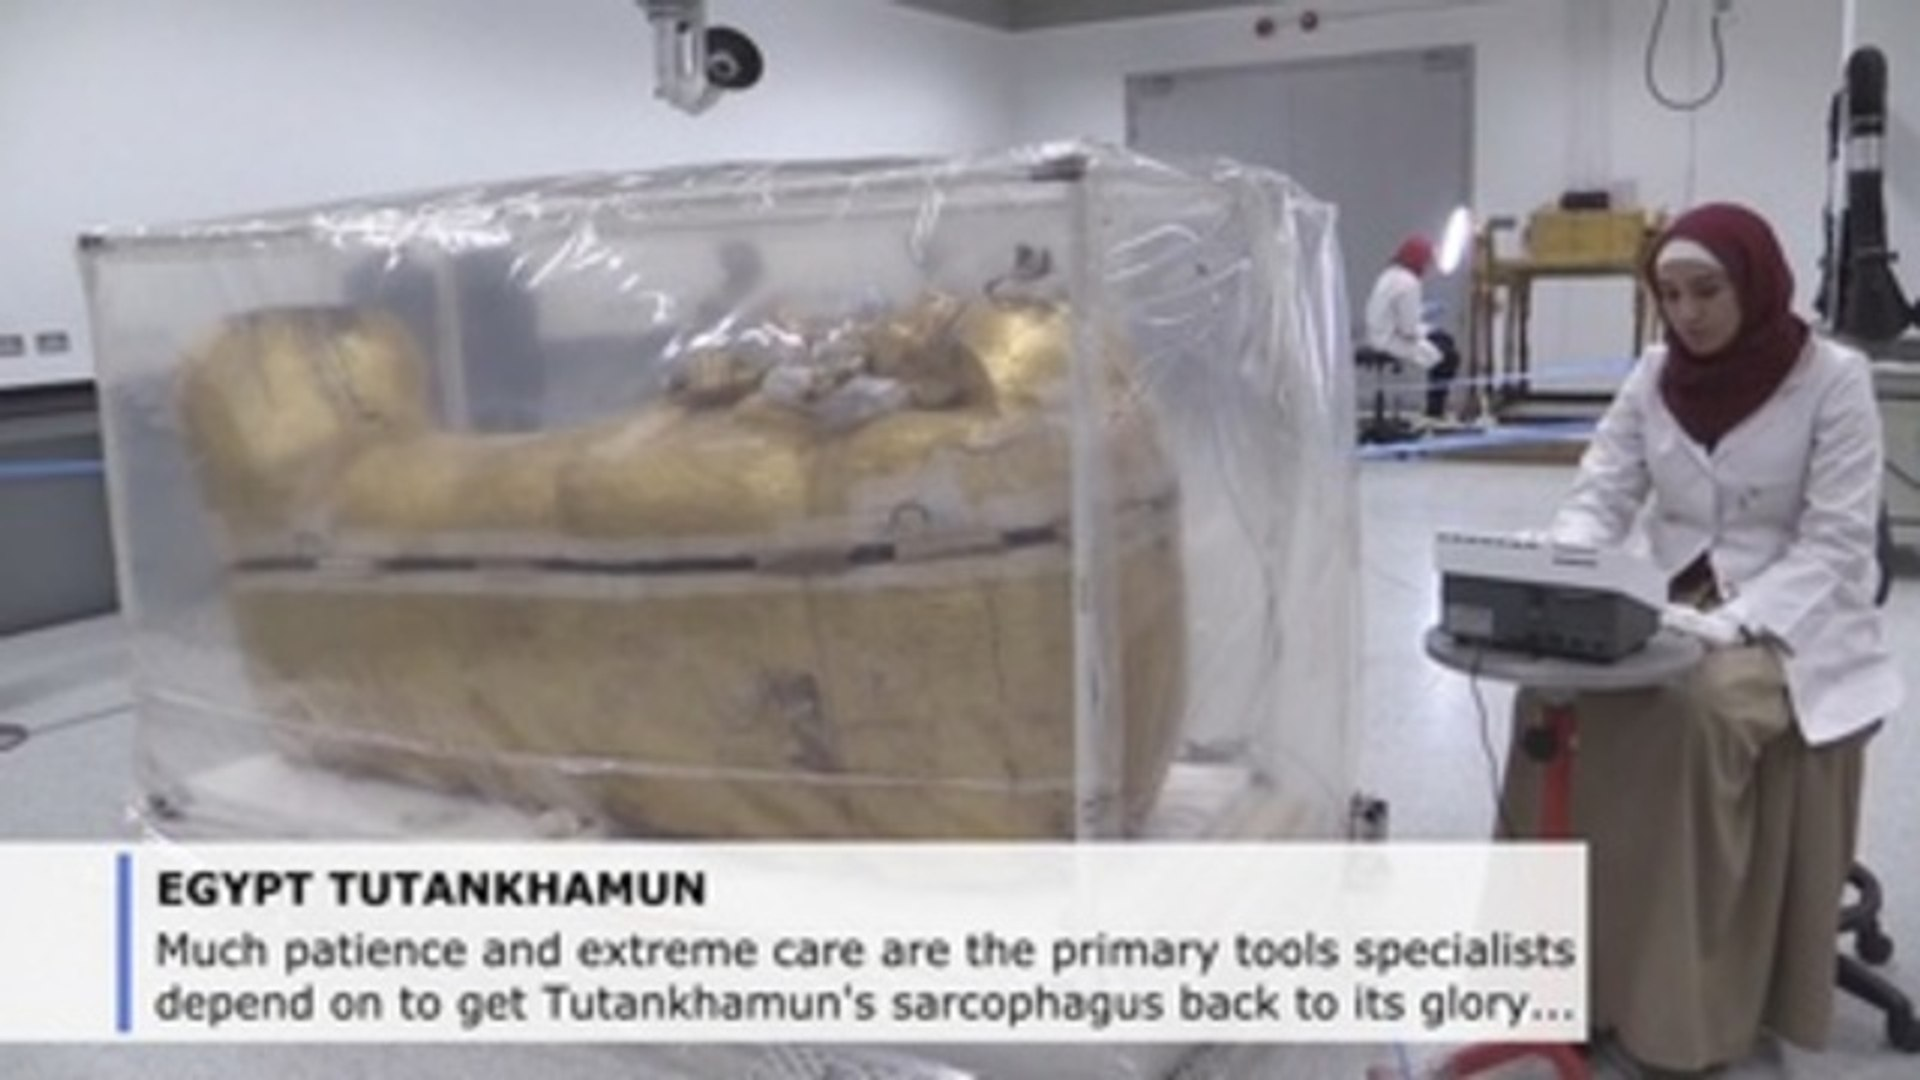 Care, patience to get Tutankhamun's coffin back to its former glory (C)